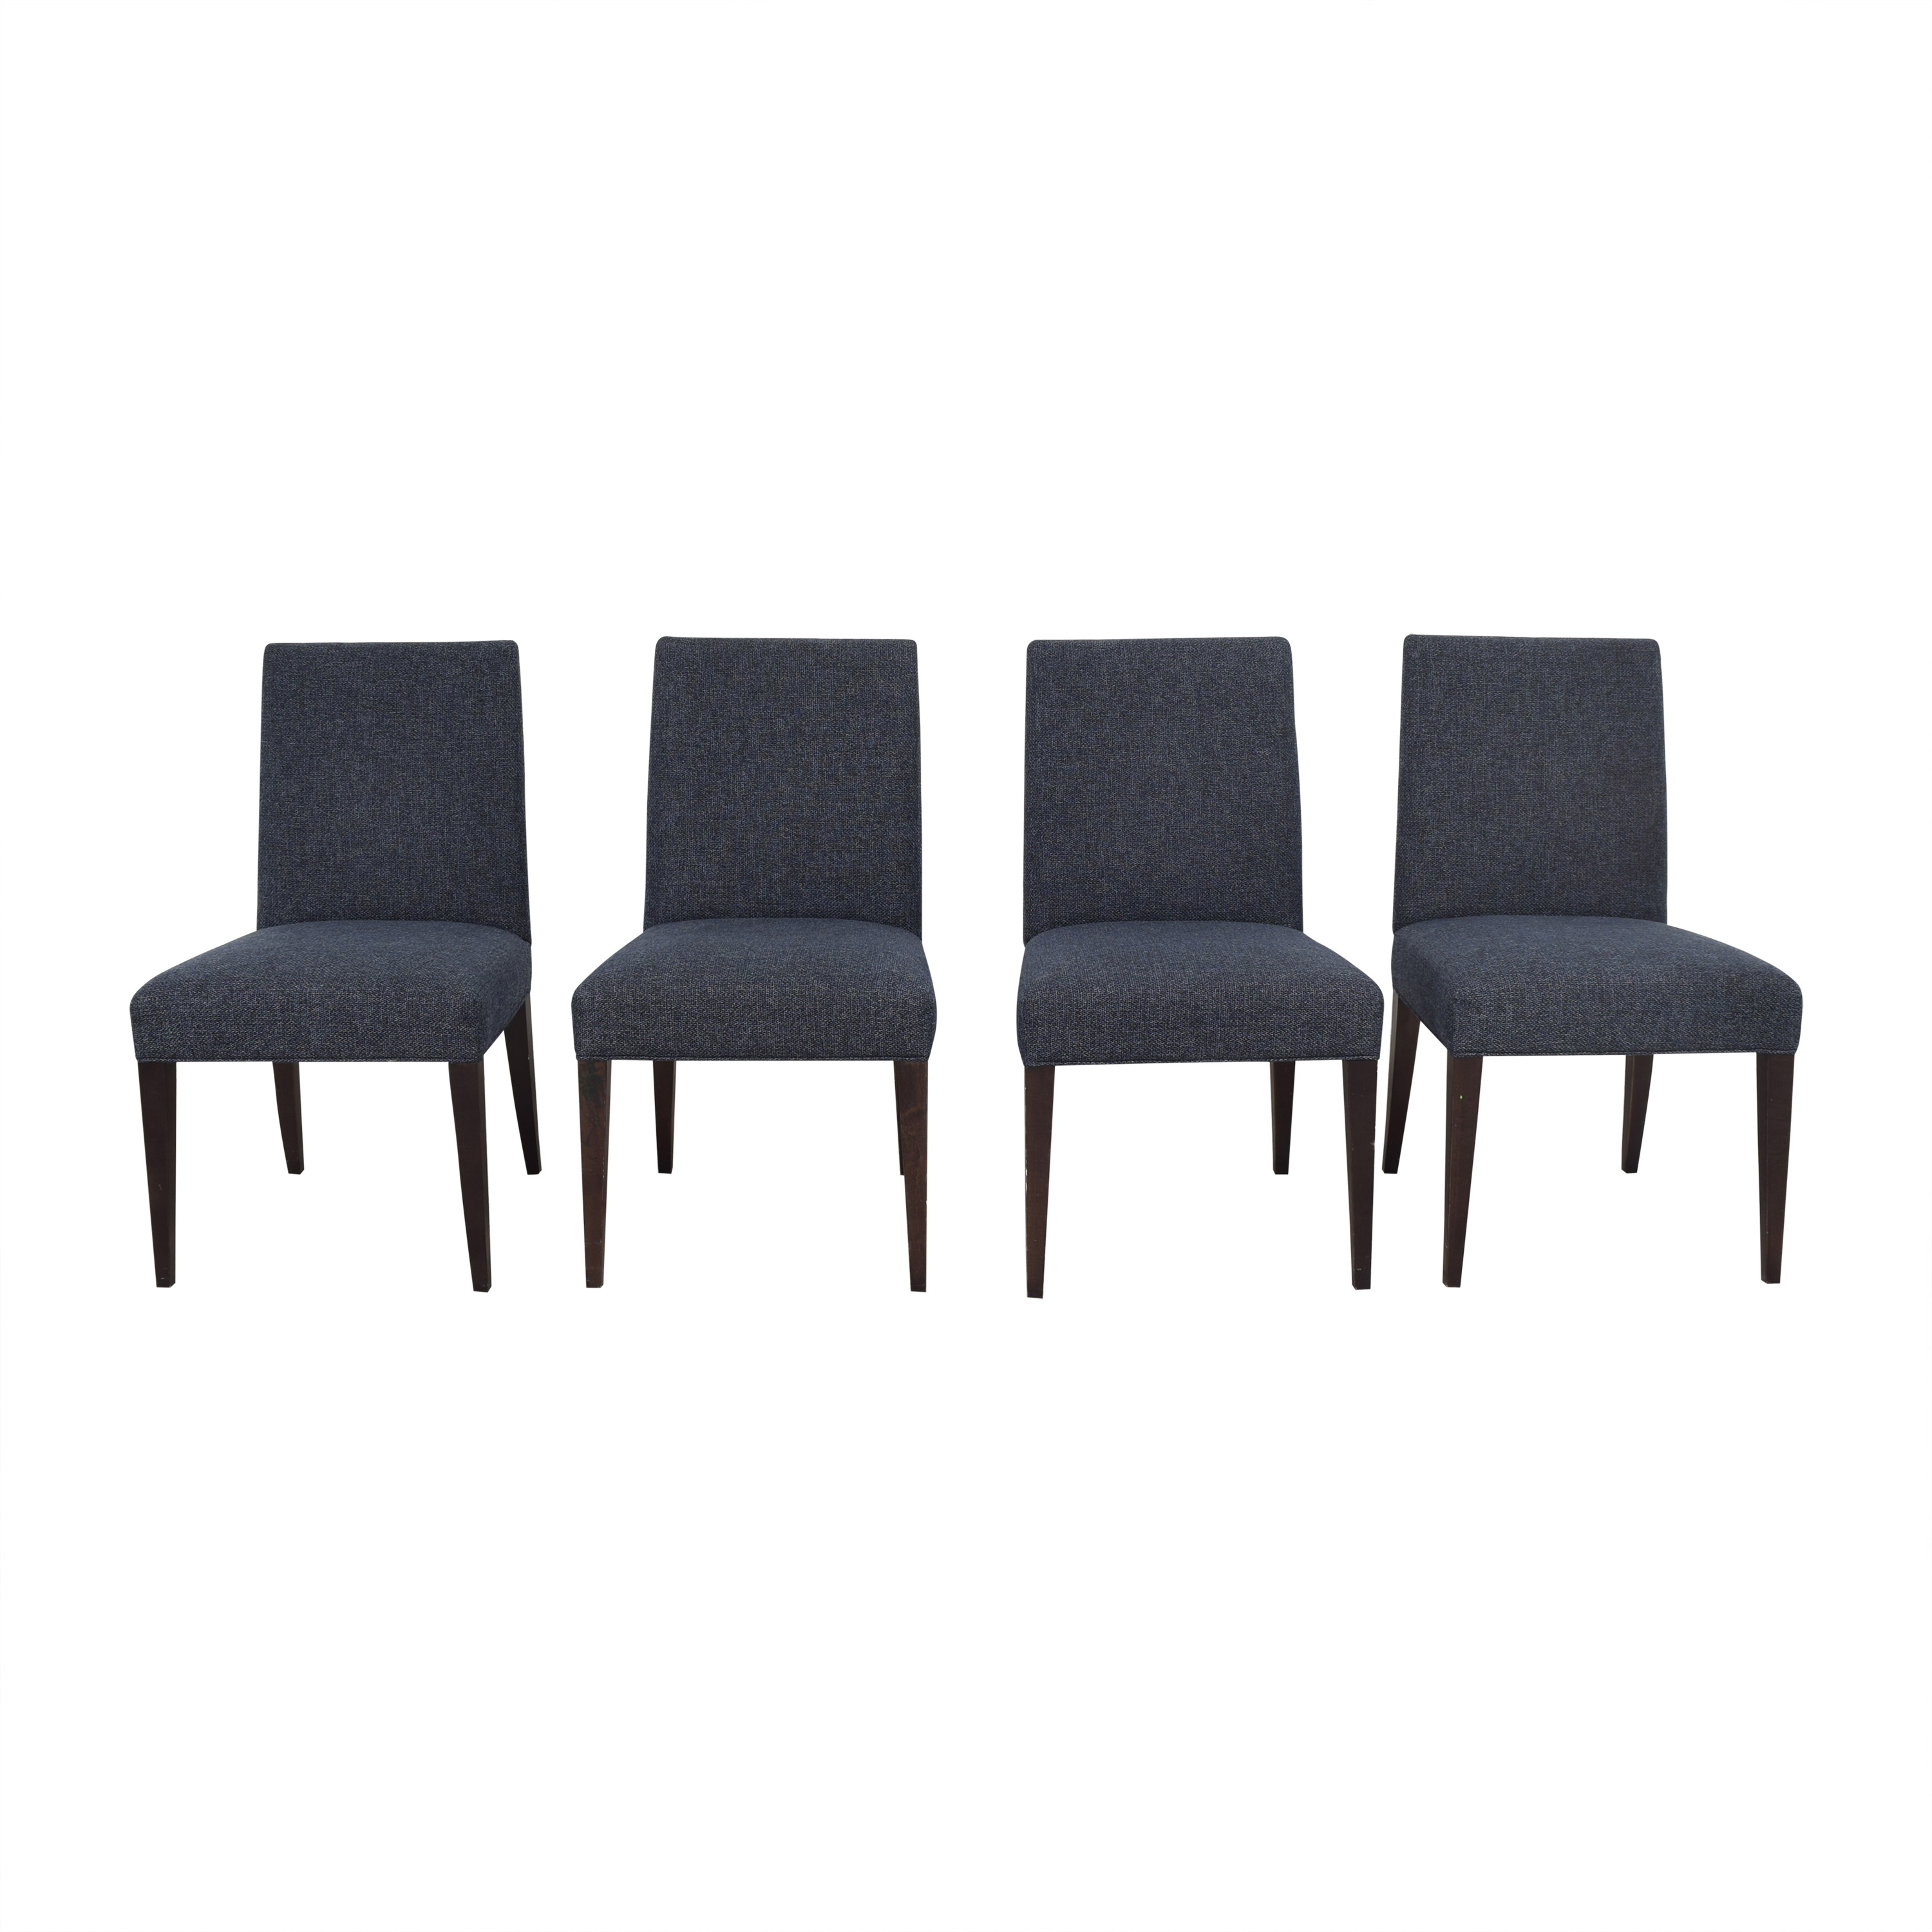 Crate & Barrel Miles Upholstered Dining Chairs / Dining Chairs